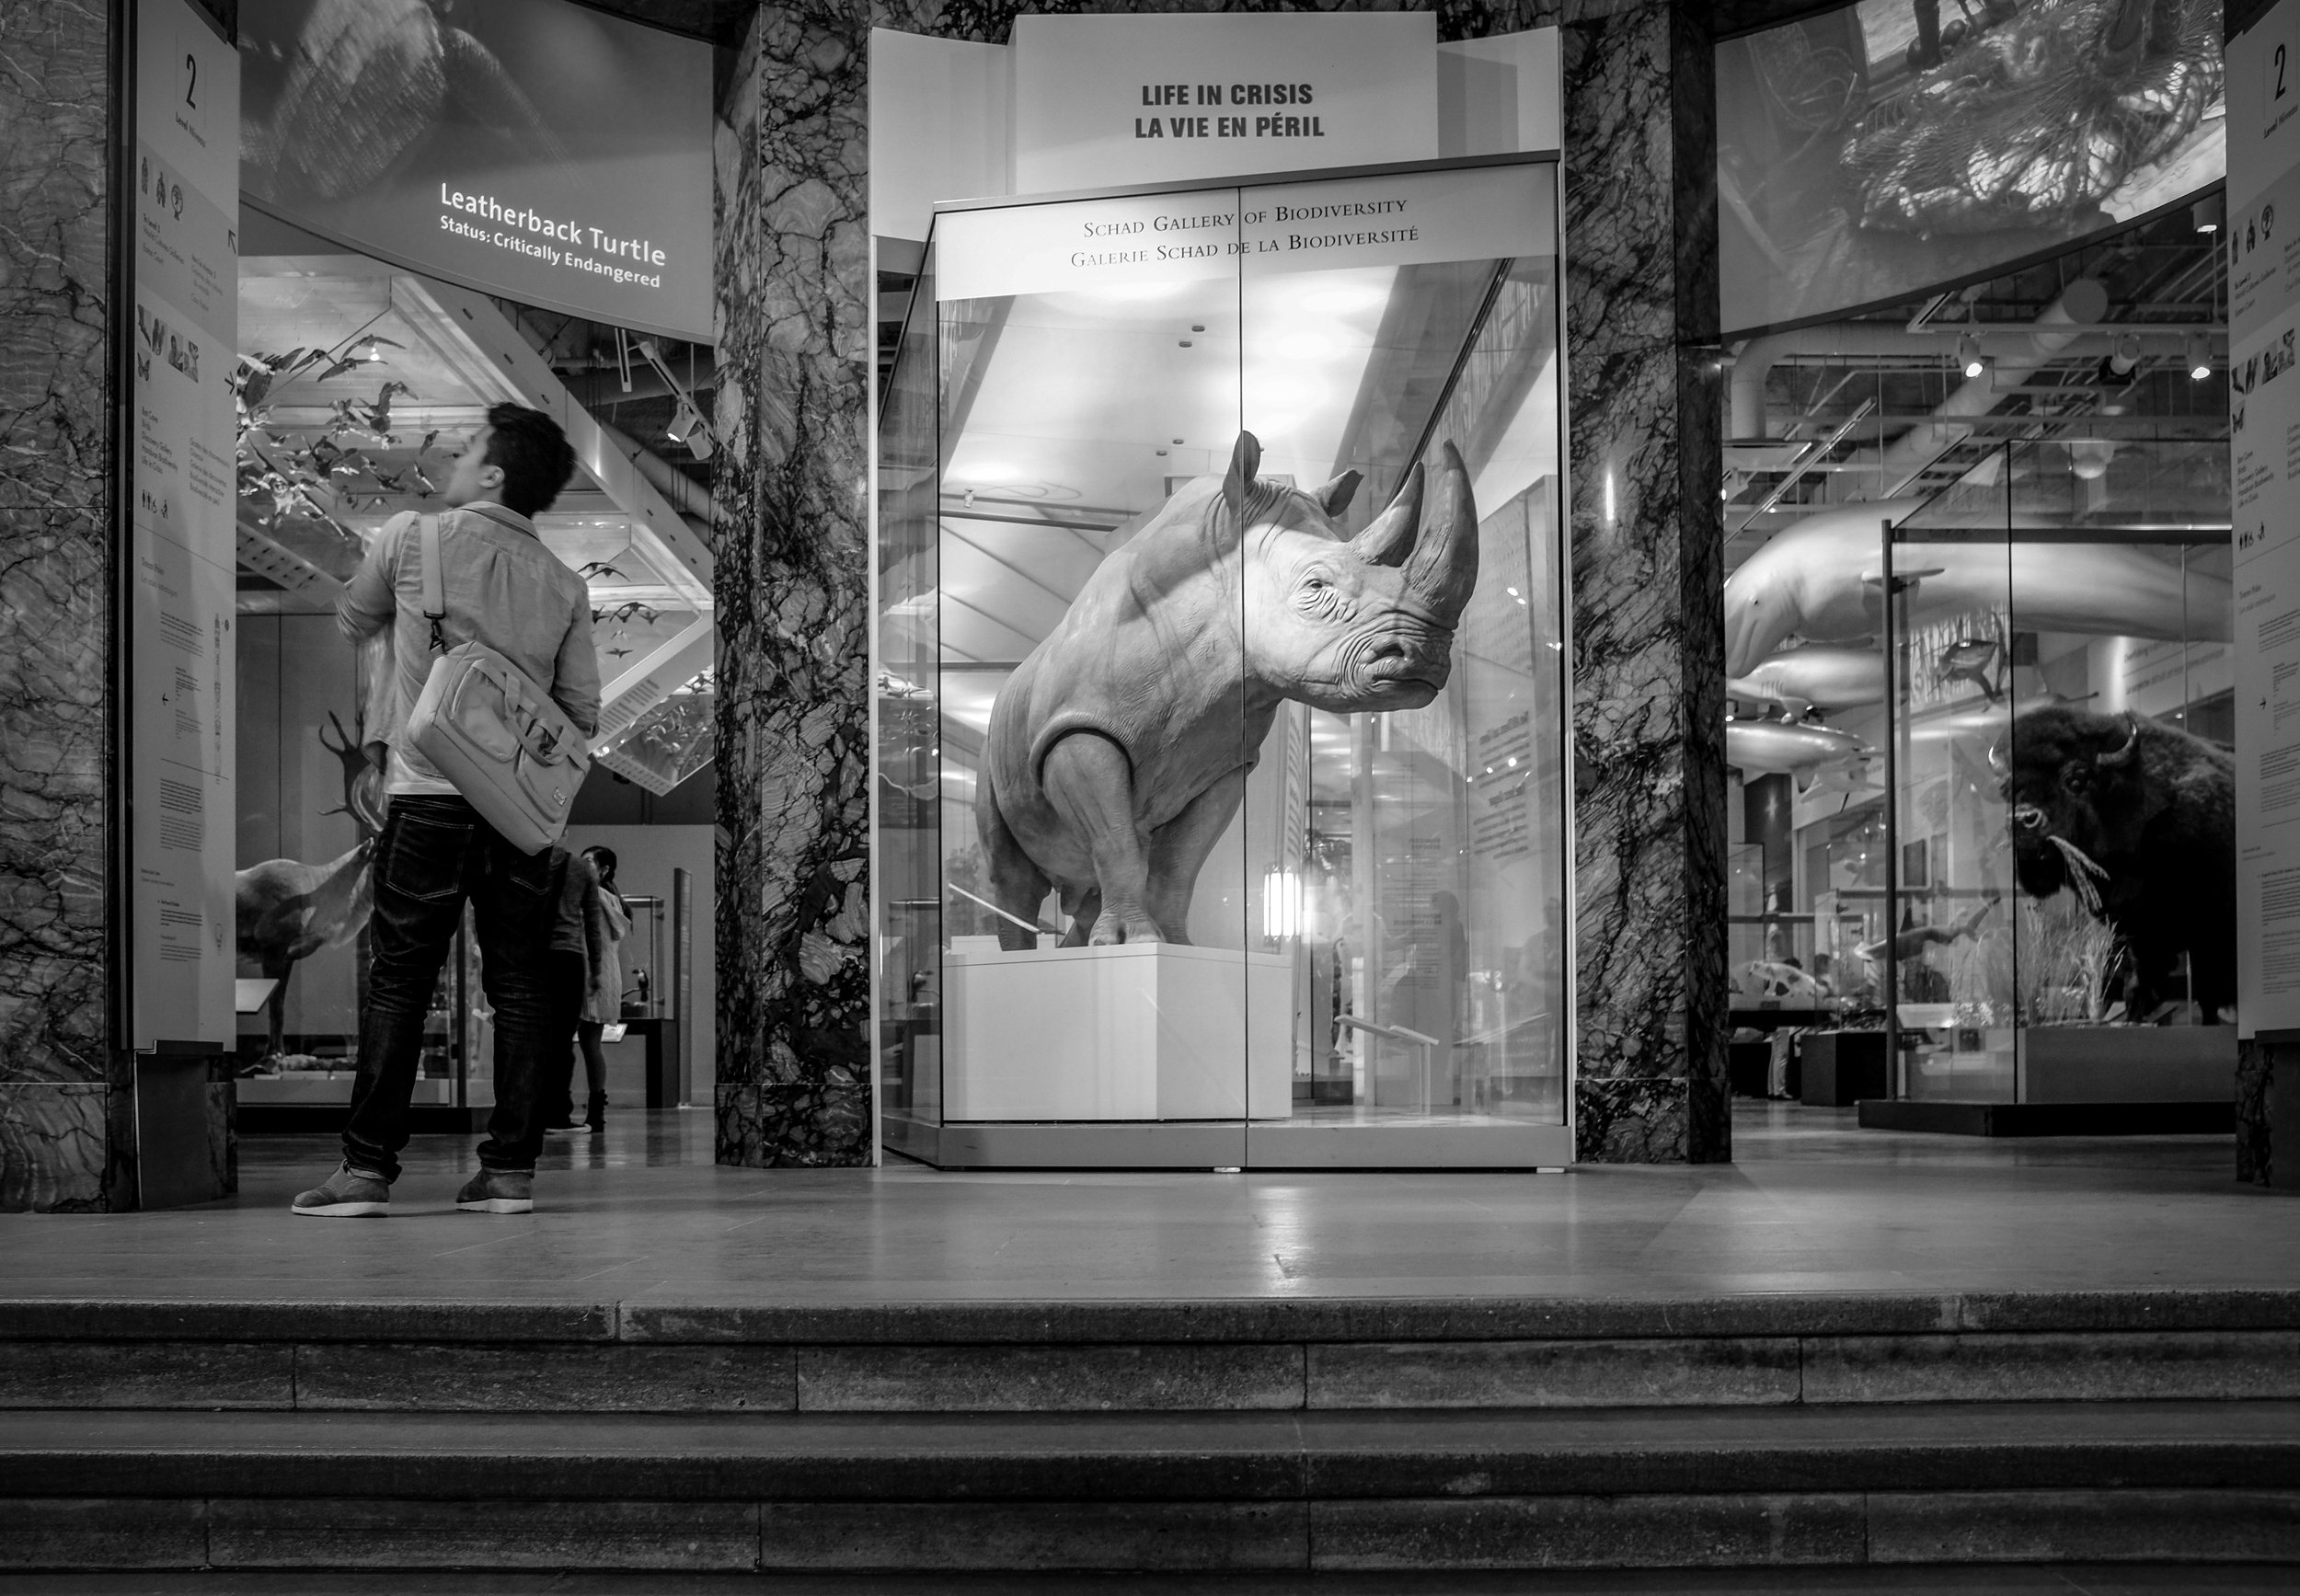 What caught my eye in this image at the Royal Ontario Museum located in Toronto, Canada, was the rhino behind glass as if it's guarding this gallery, but somehow being held back. Fujifilm X100S, 1/8 @f4.0, ISO 800.